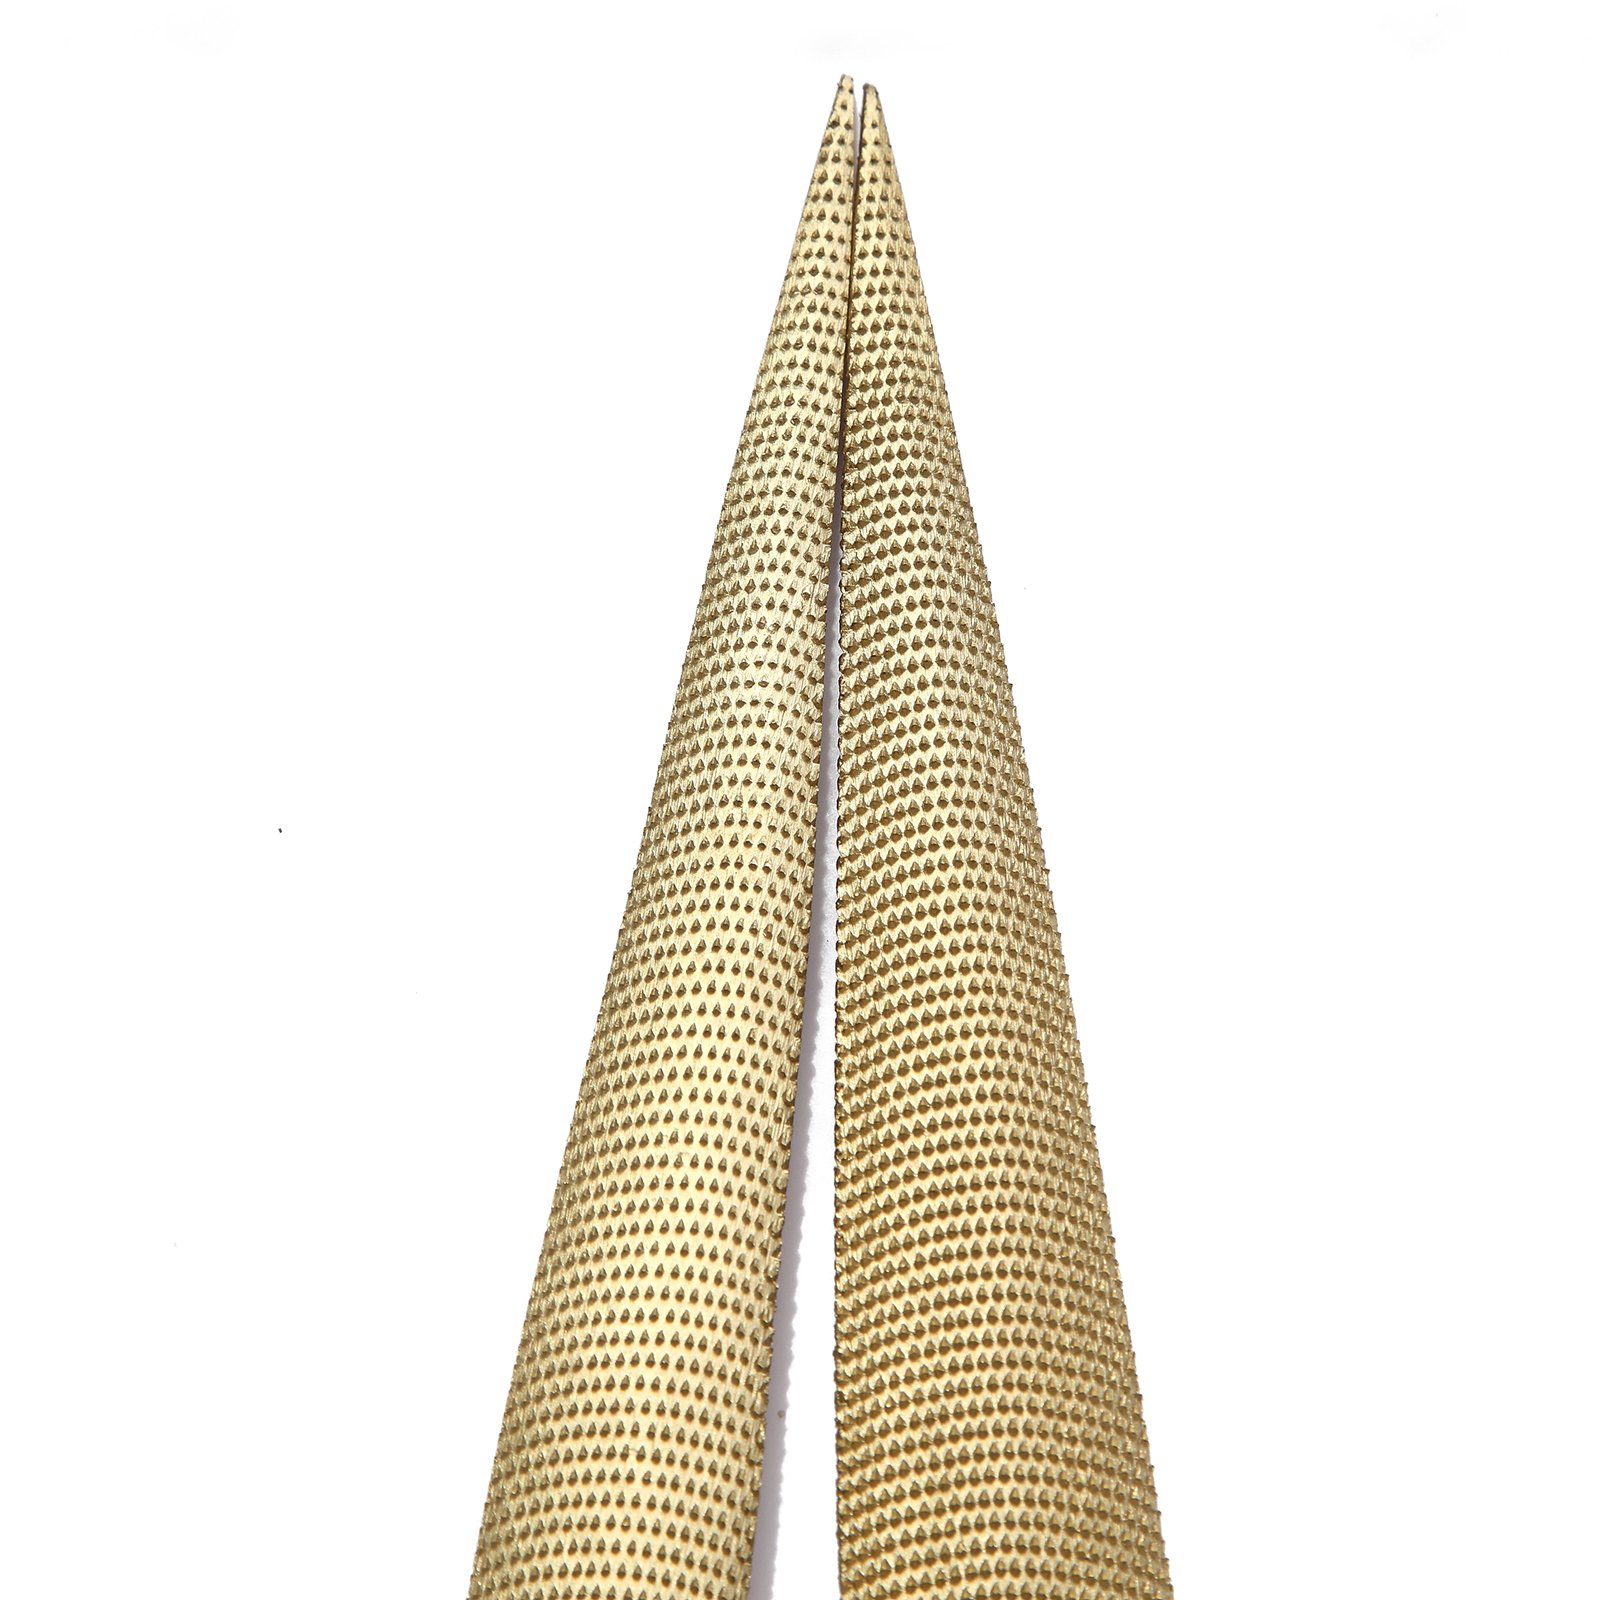 NKTM 8'' and 10'' Golden Tapered Wood Rasp Bastard File with Rubber Handle in Gift Bag for Carving 2 Pack by NKTM (Image #9)